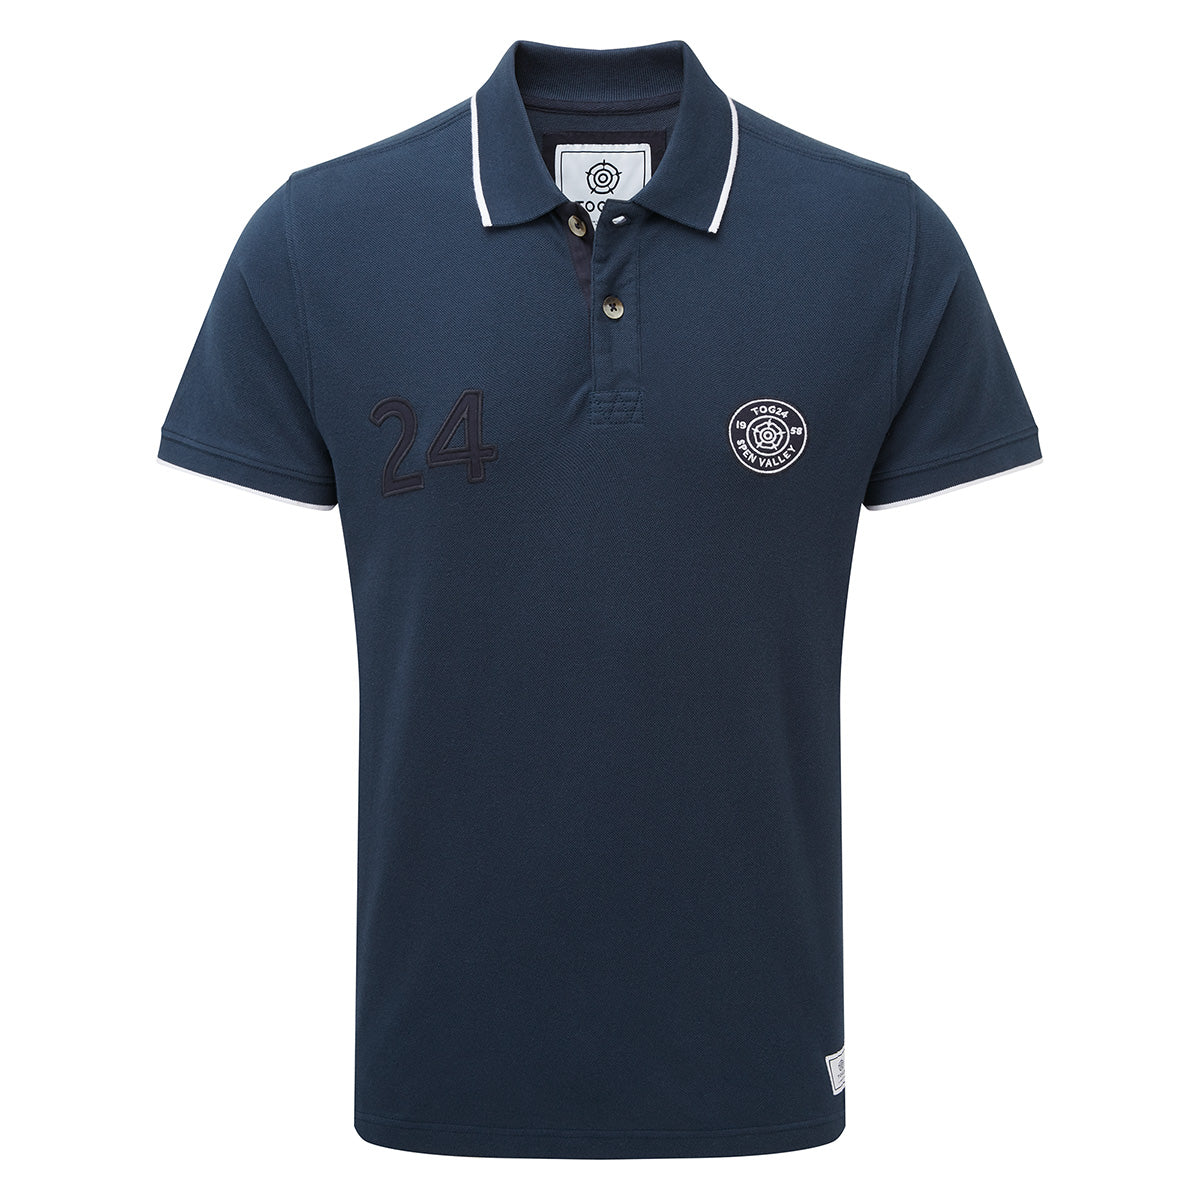 Hebble Mens Pique Polo Shirt - Naval Blue image 4